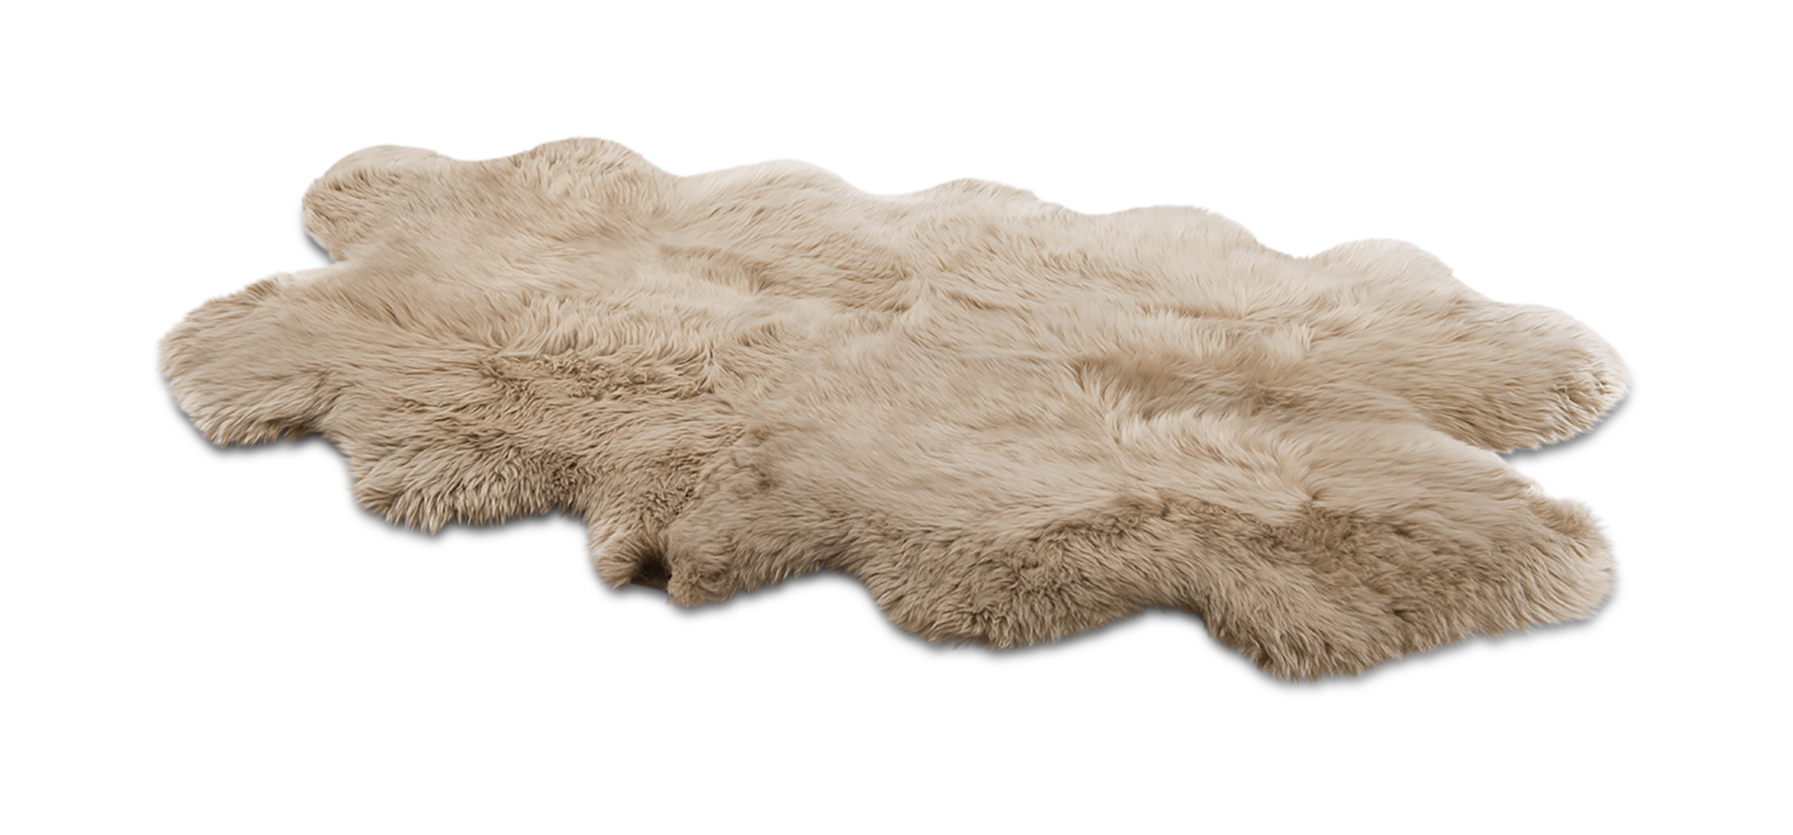 UGG Sheepskin Area Rug-Quarto Rugs in Tan This luxurious sheepskin rug adds a chic and modern update to any space. Details:. 100% Genuine Sheepskin. 48 inch x 72 inch. UGG Sheepskin Area Rug-Quarto Rugs in Tan